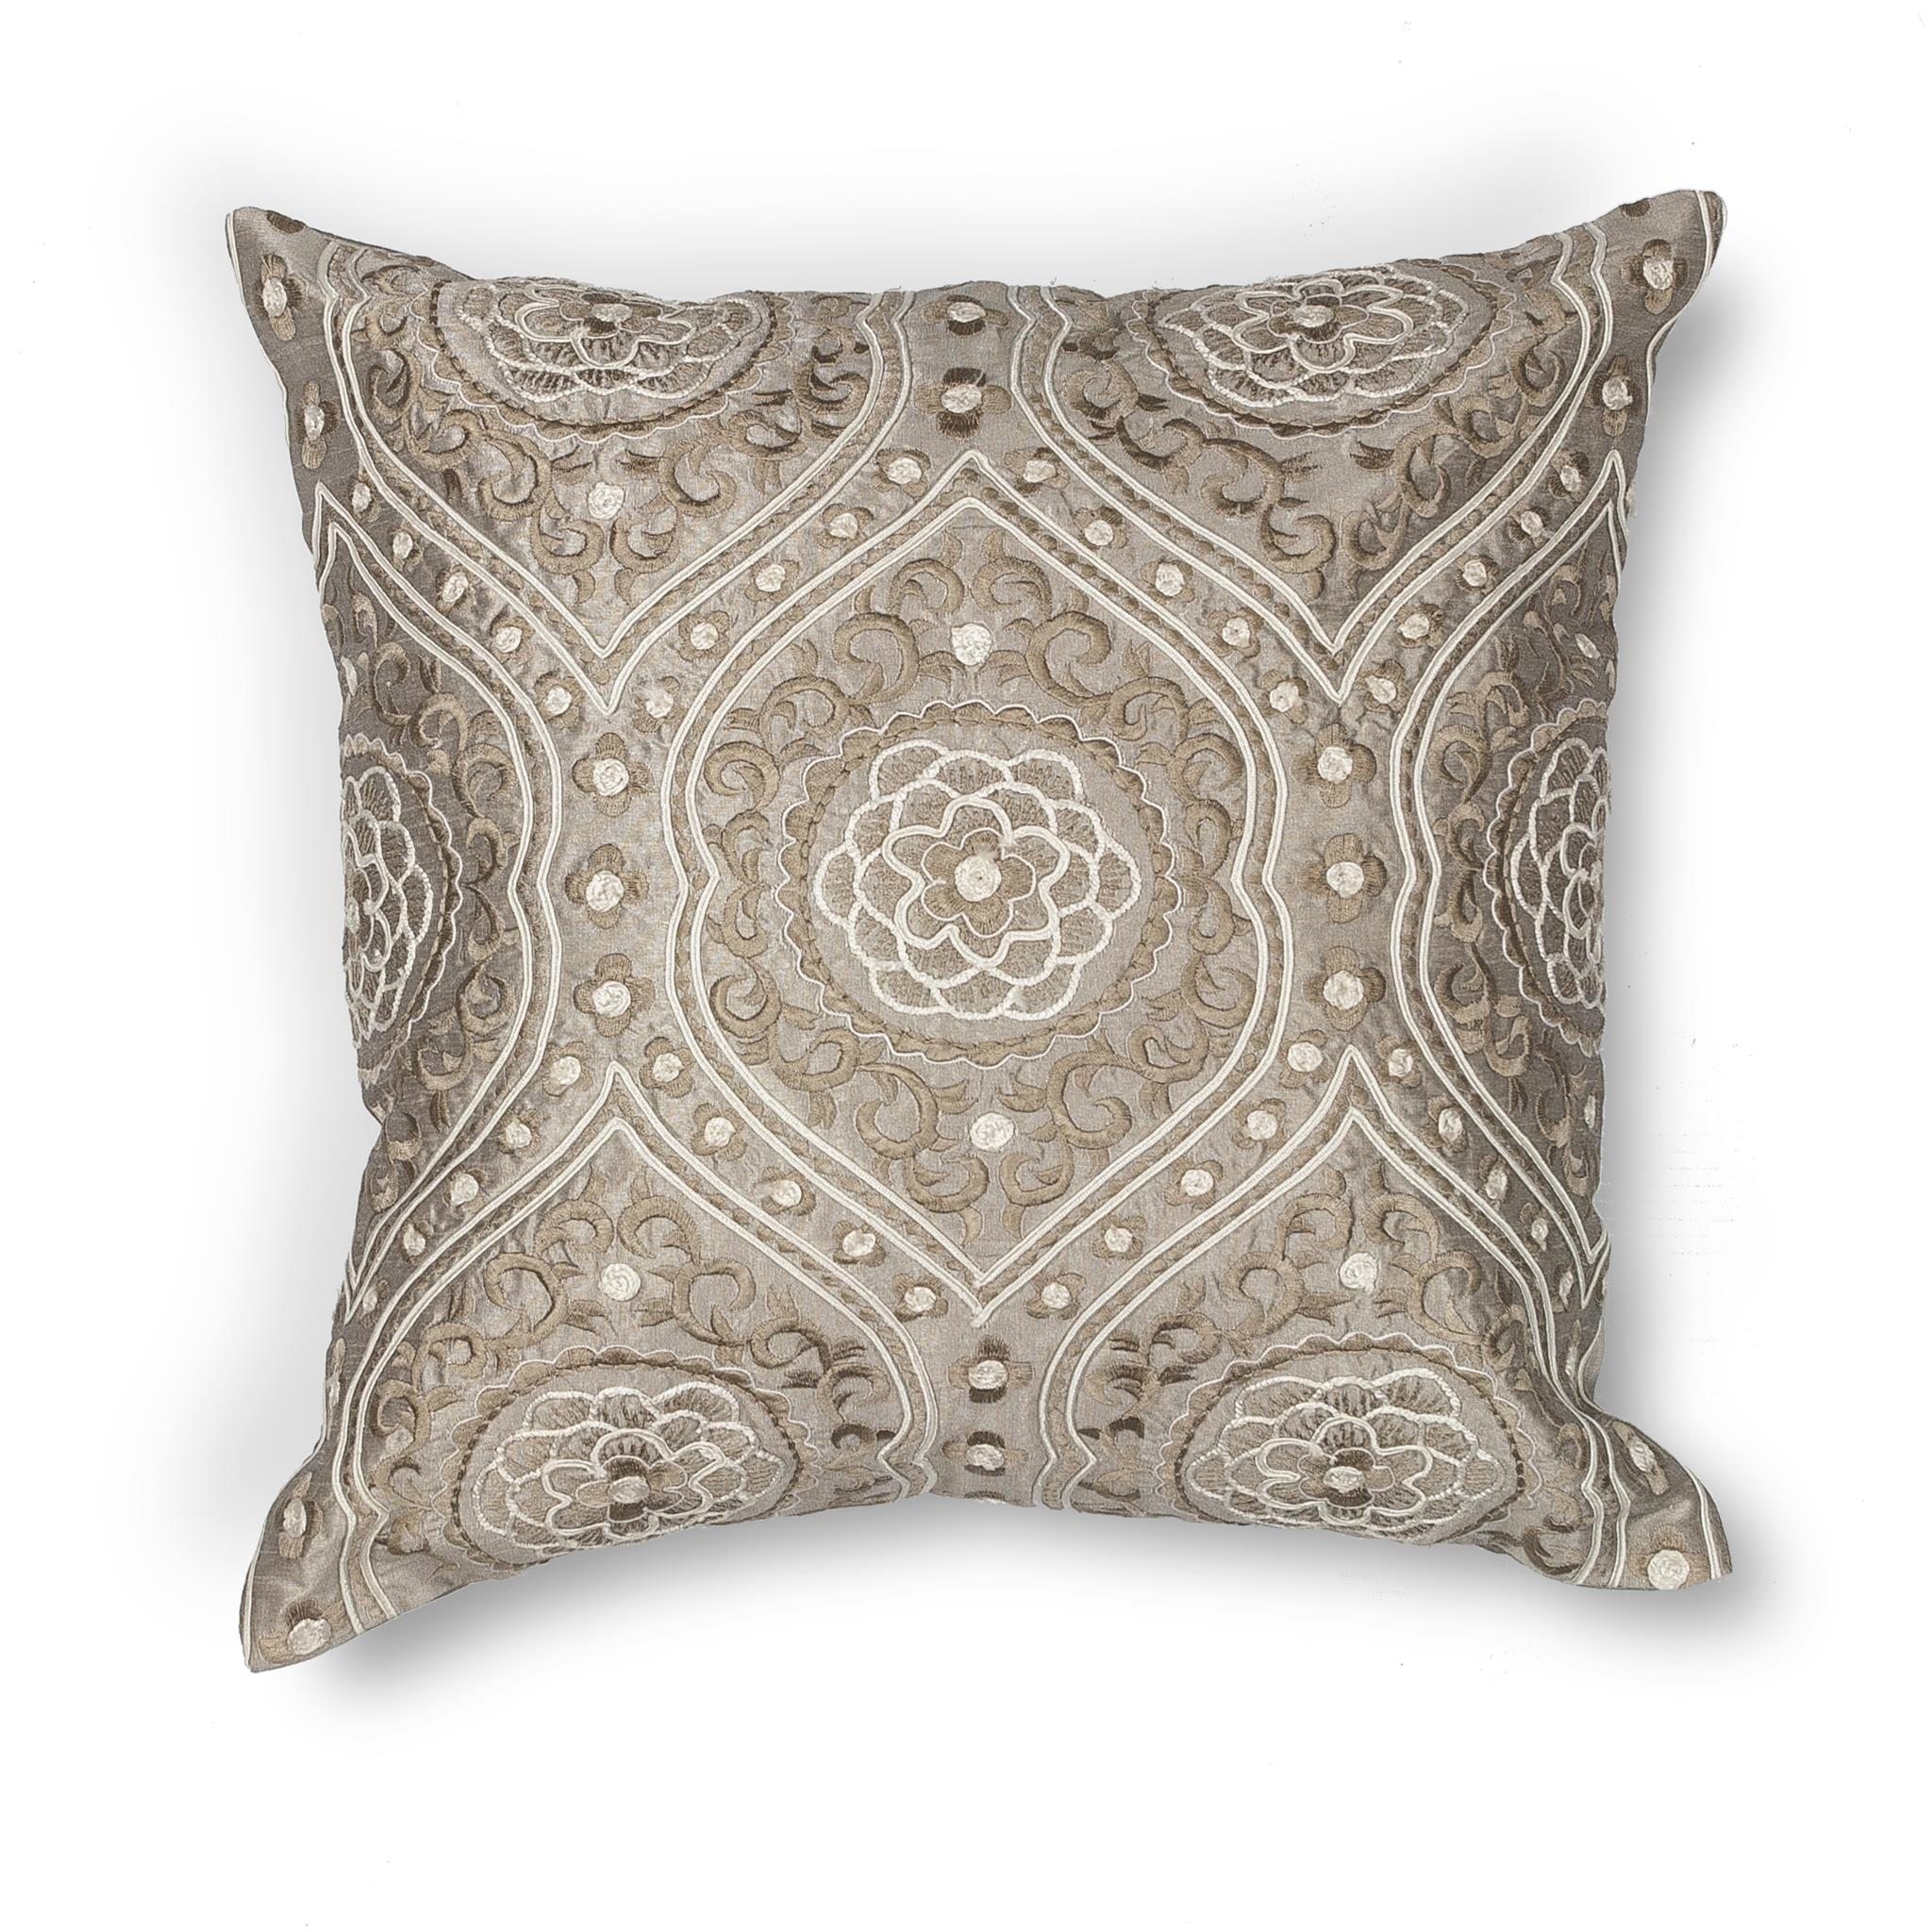 L183 Silver Damask Pillow